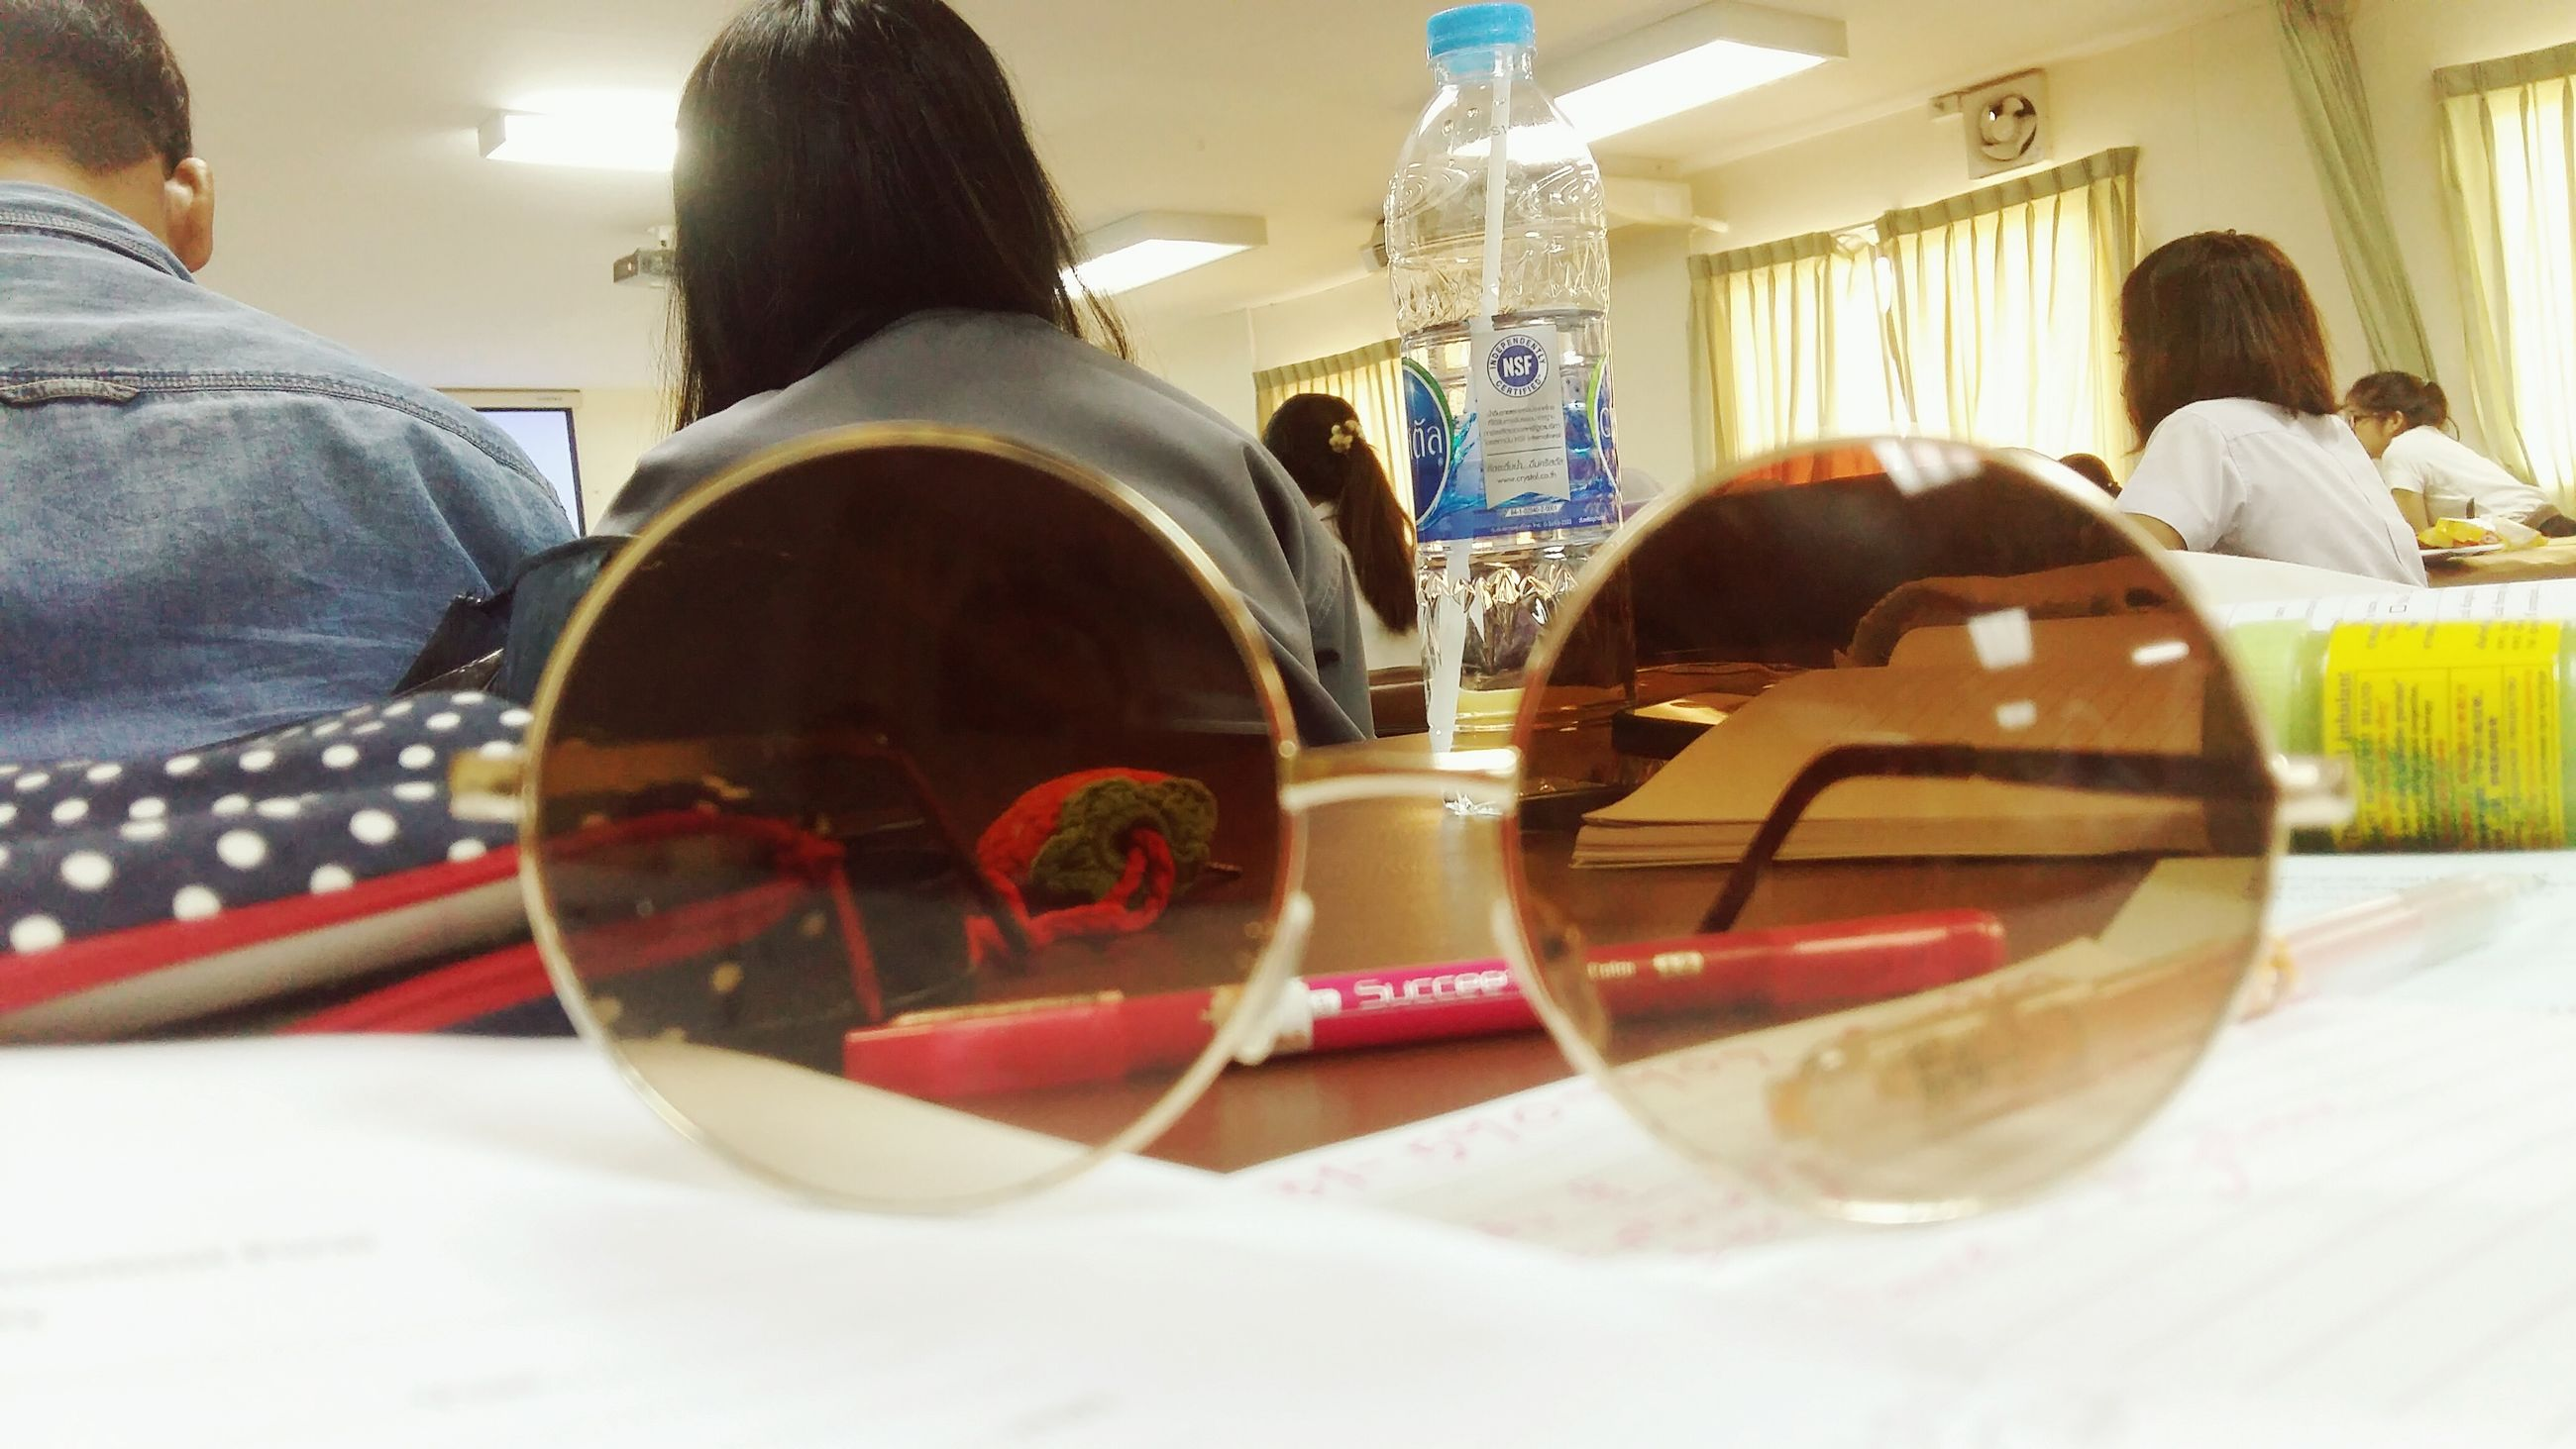 lifestyles, leisure activity, food and drink, person, drink, men, refreshment, sitting, table, indoors, incidental people, sunglasses, casual clothing, holding, day, drinking glass, reflection